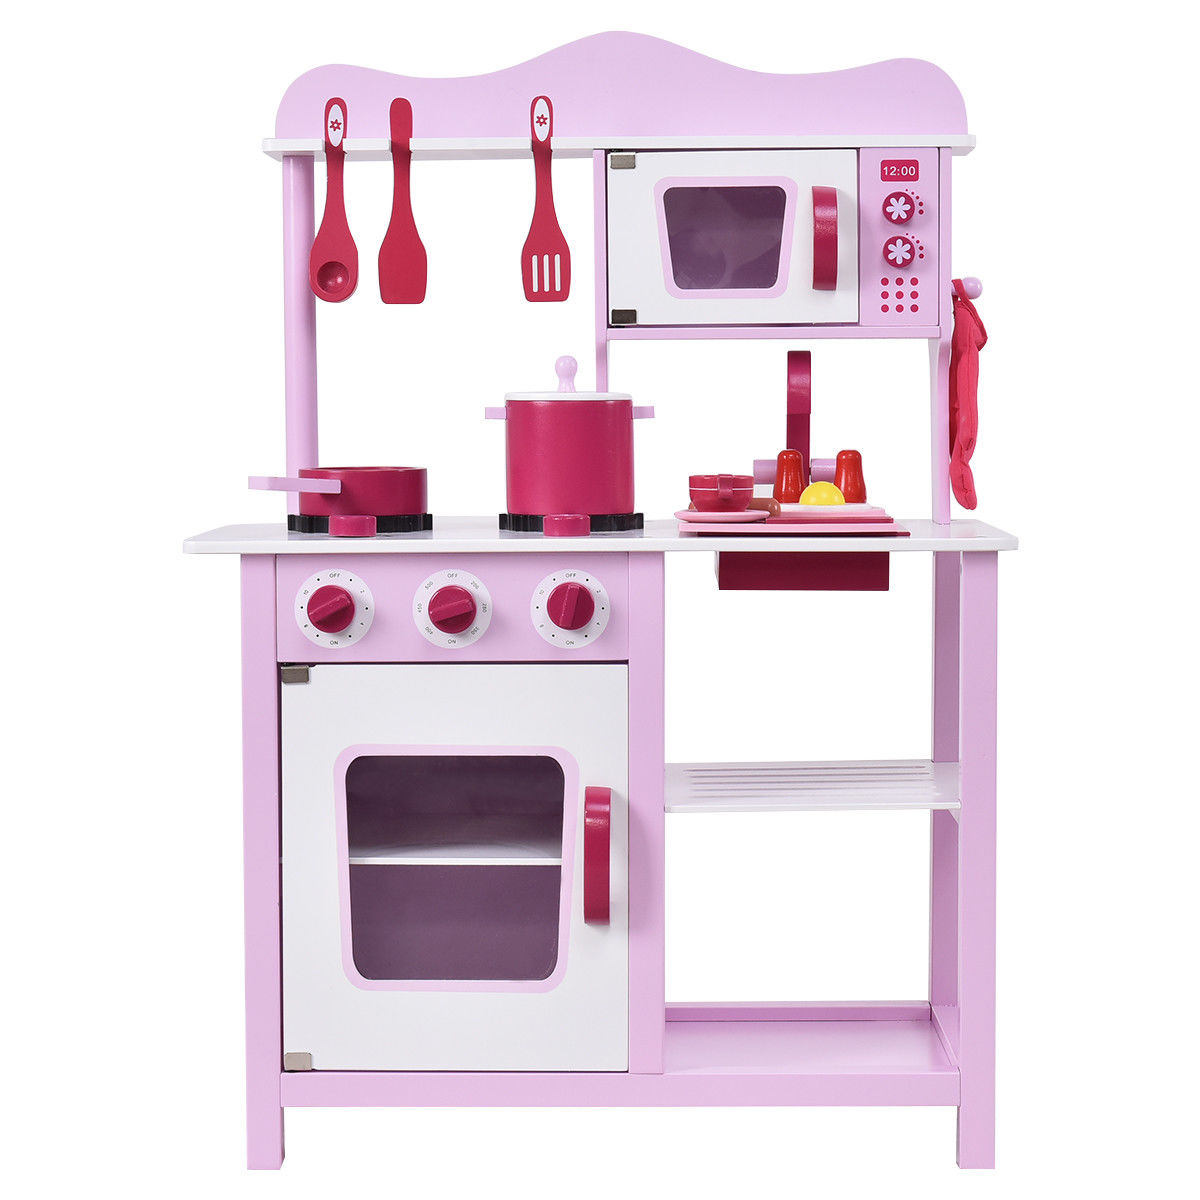 Costway Wooden Kitchen Toy Playset Kids Children Cooking Pretend Play Set Toddler Gift by Costway